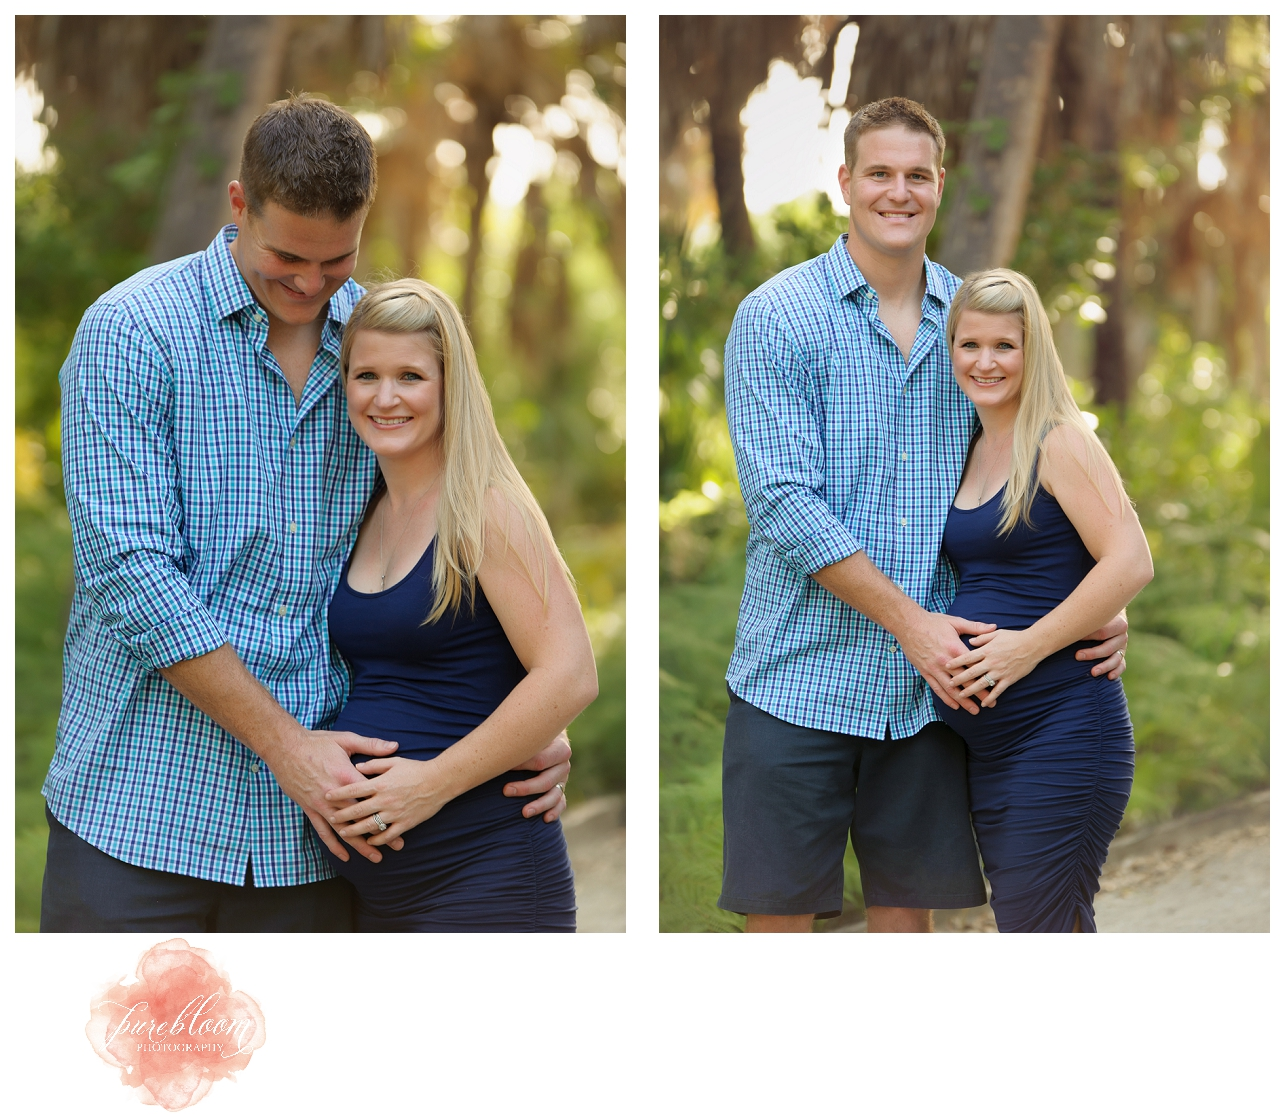 Ft Desoto Maternity Session | Tampa & St Pete Newborn Photographer | Pure Bloom Photography